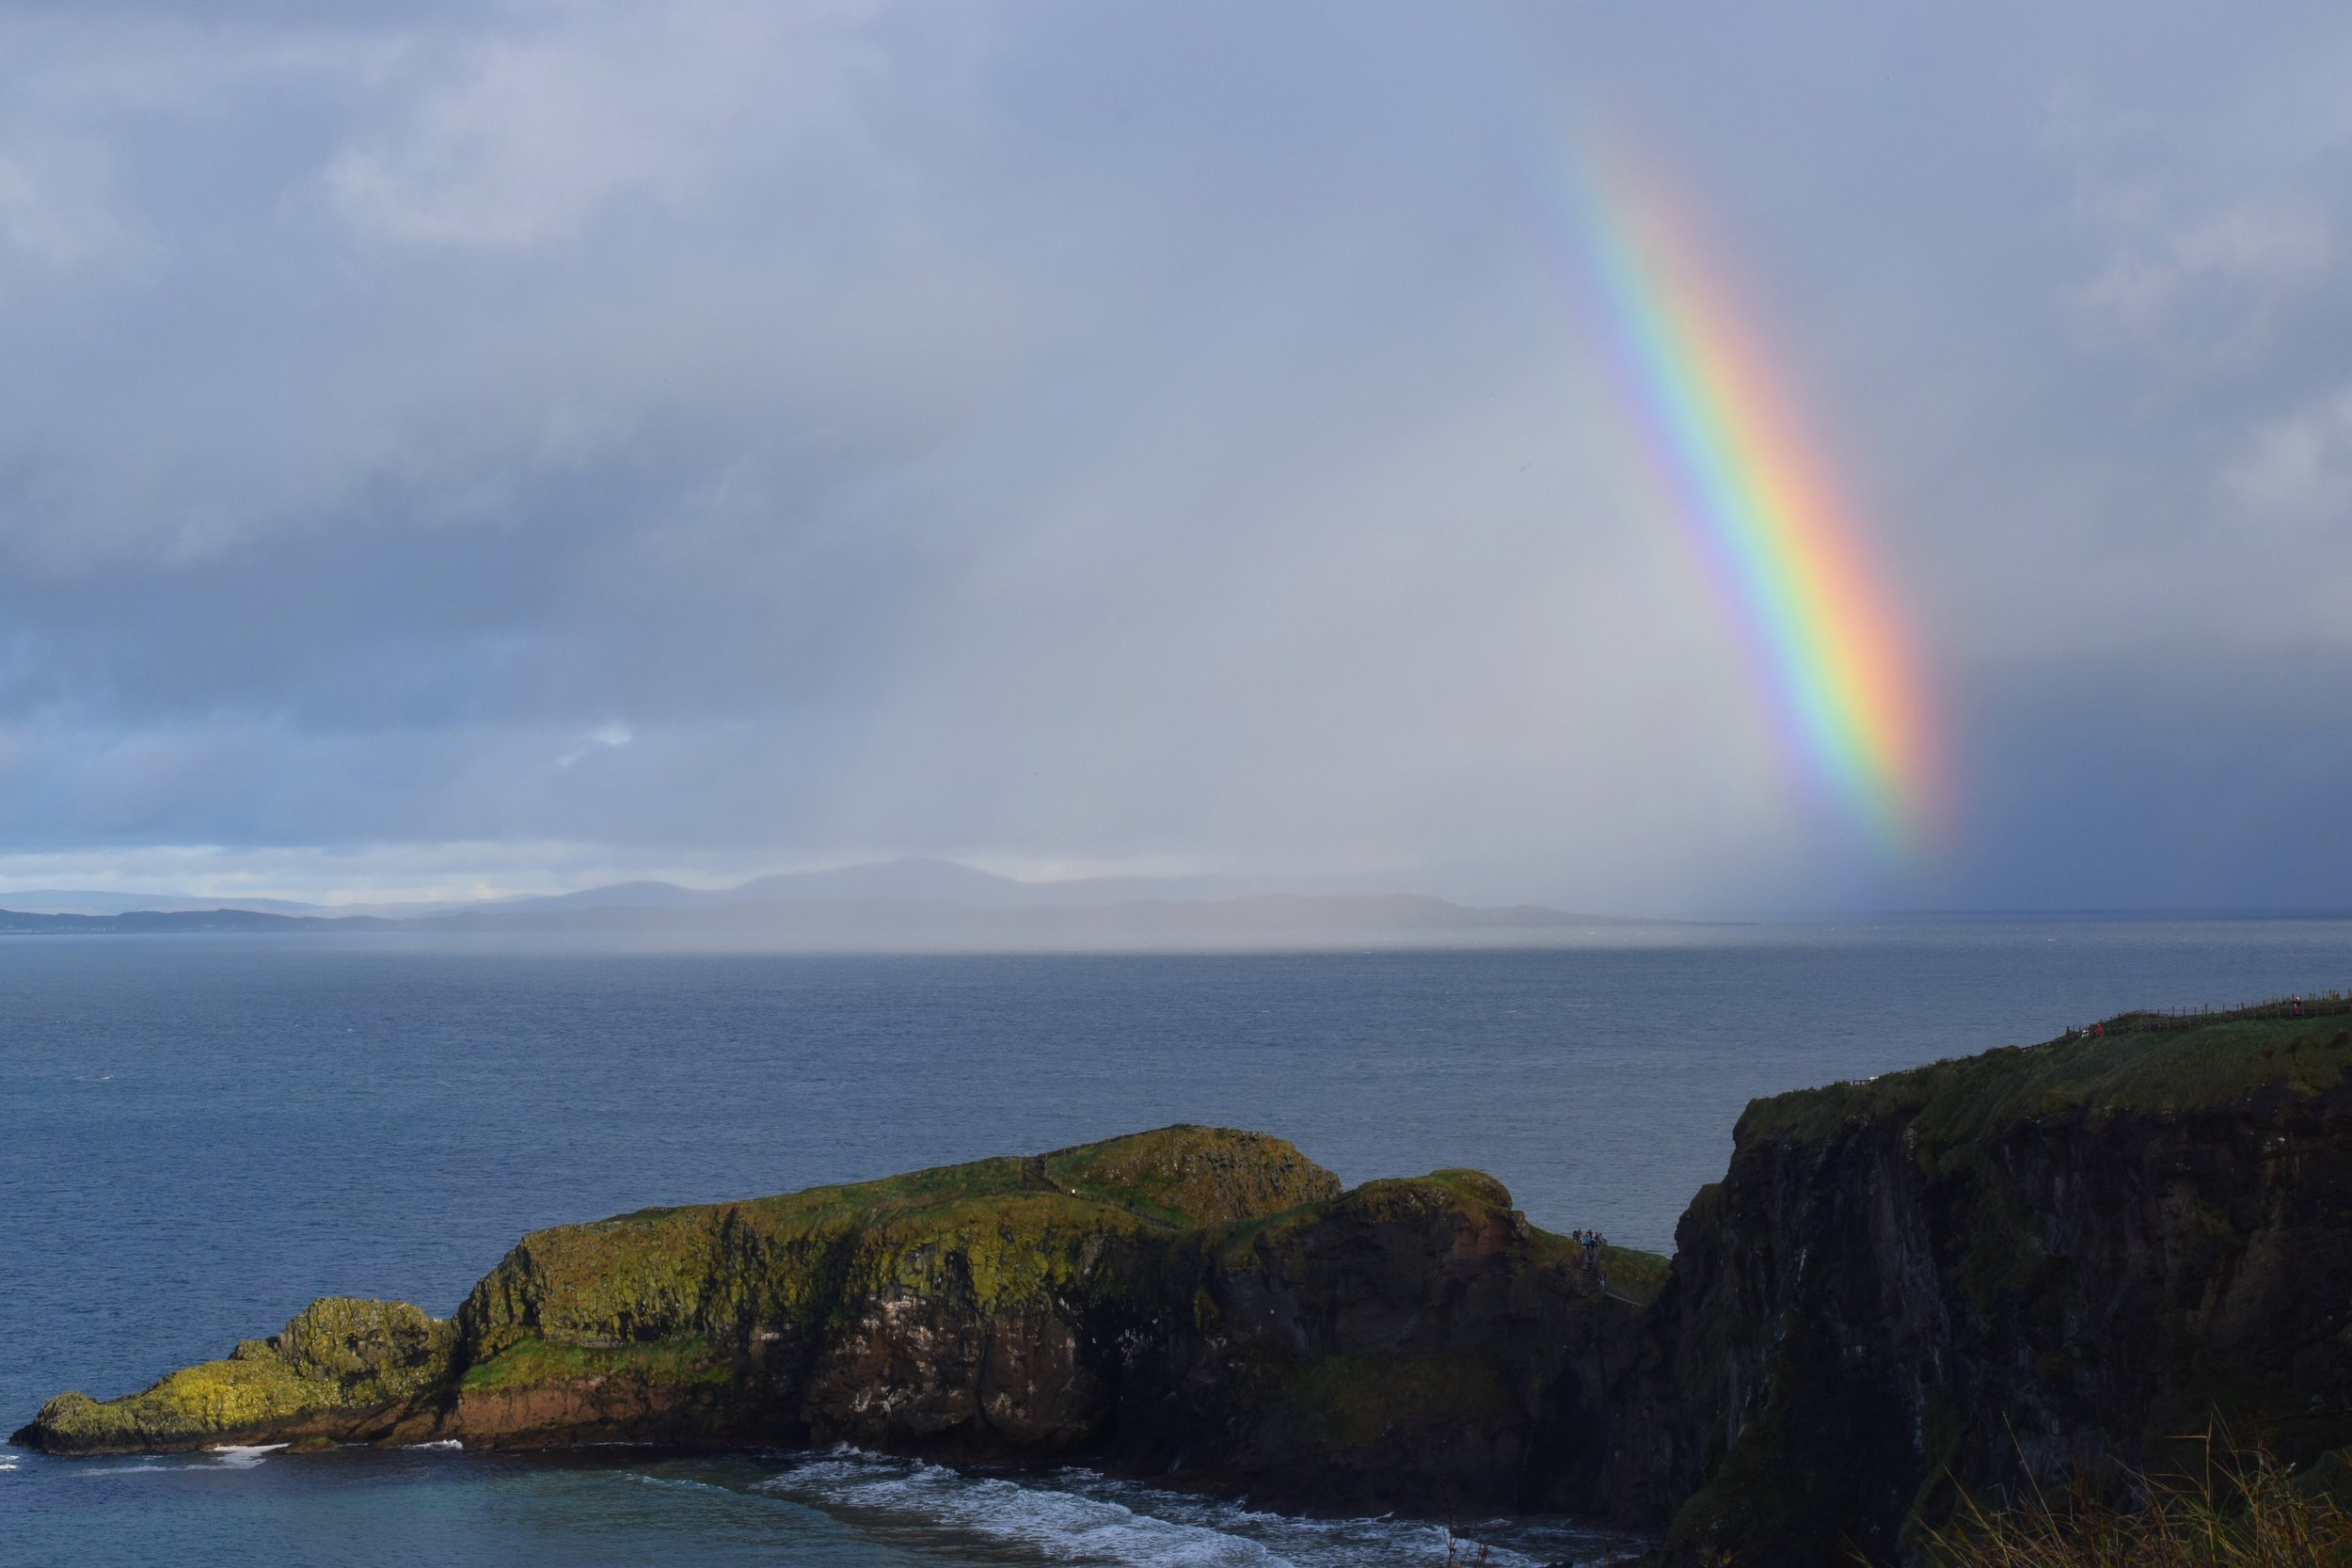 Rainbow over Rathlin Island,  the northernmost point of Ireland.   (Nikon D3330, 50mm, f/16, 1/  60 sec, ISO 200  )